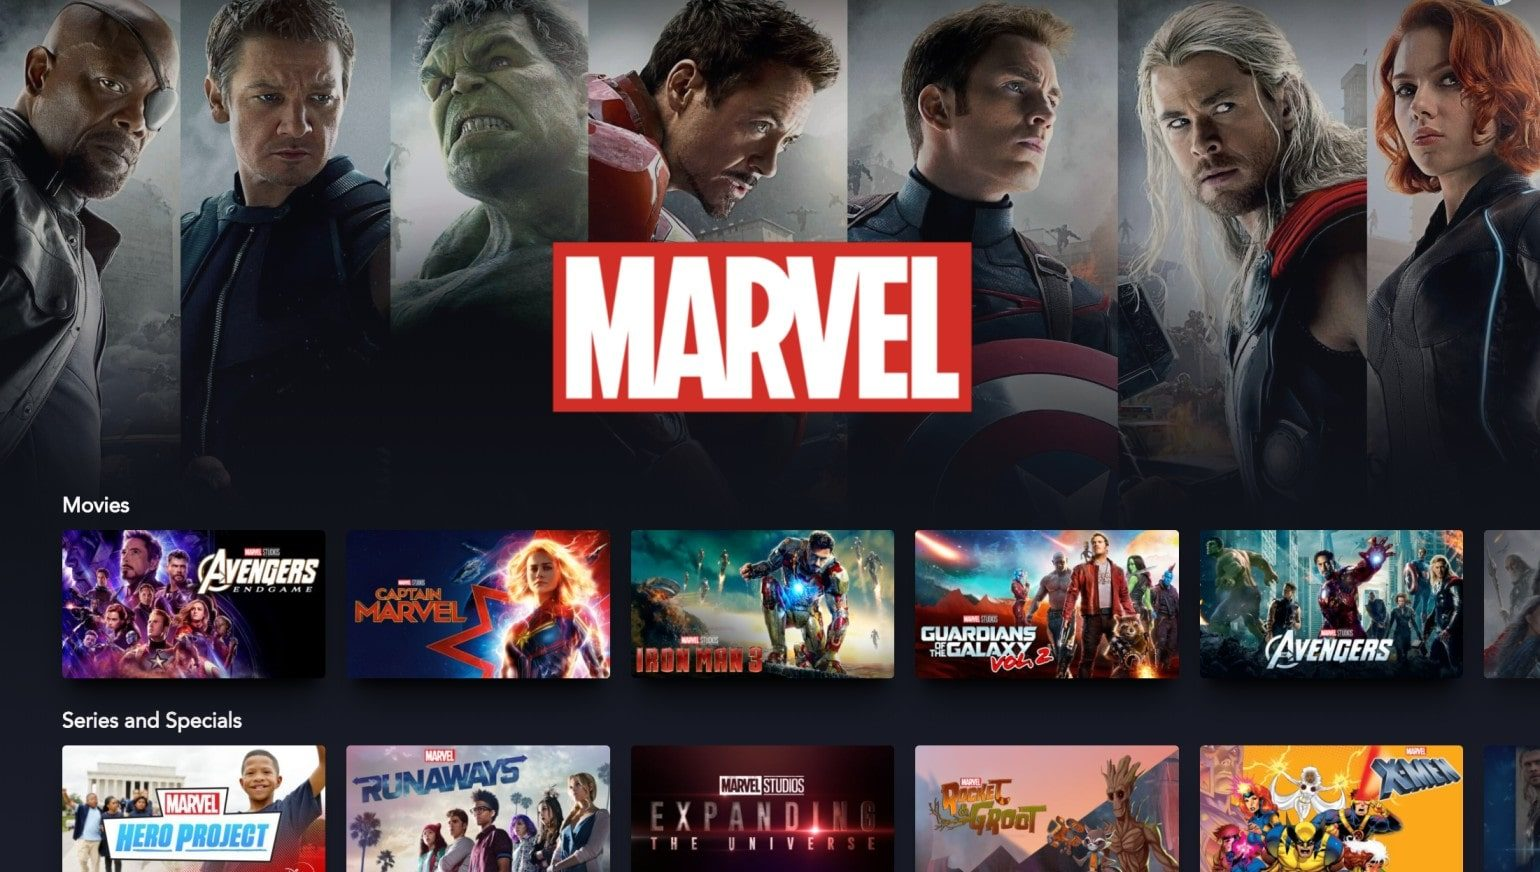 Selection of Marvel content on Disney+